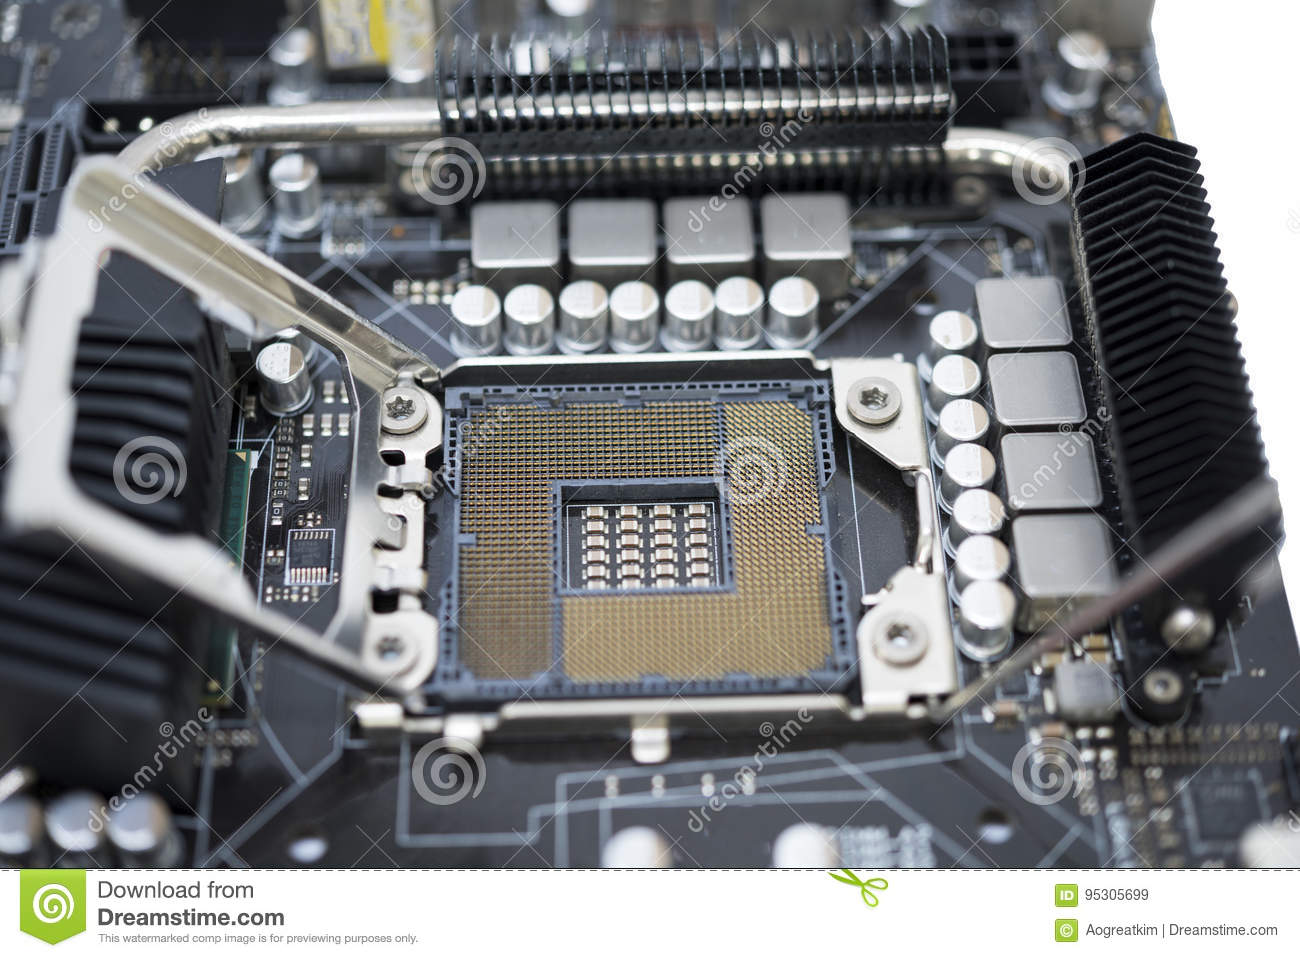 Tecnology Socket LGA 1366 For Cpu On Motherboard Computer